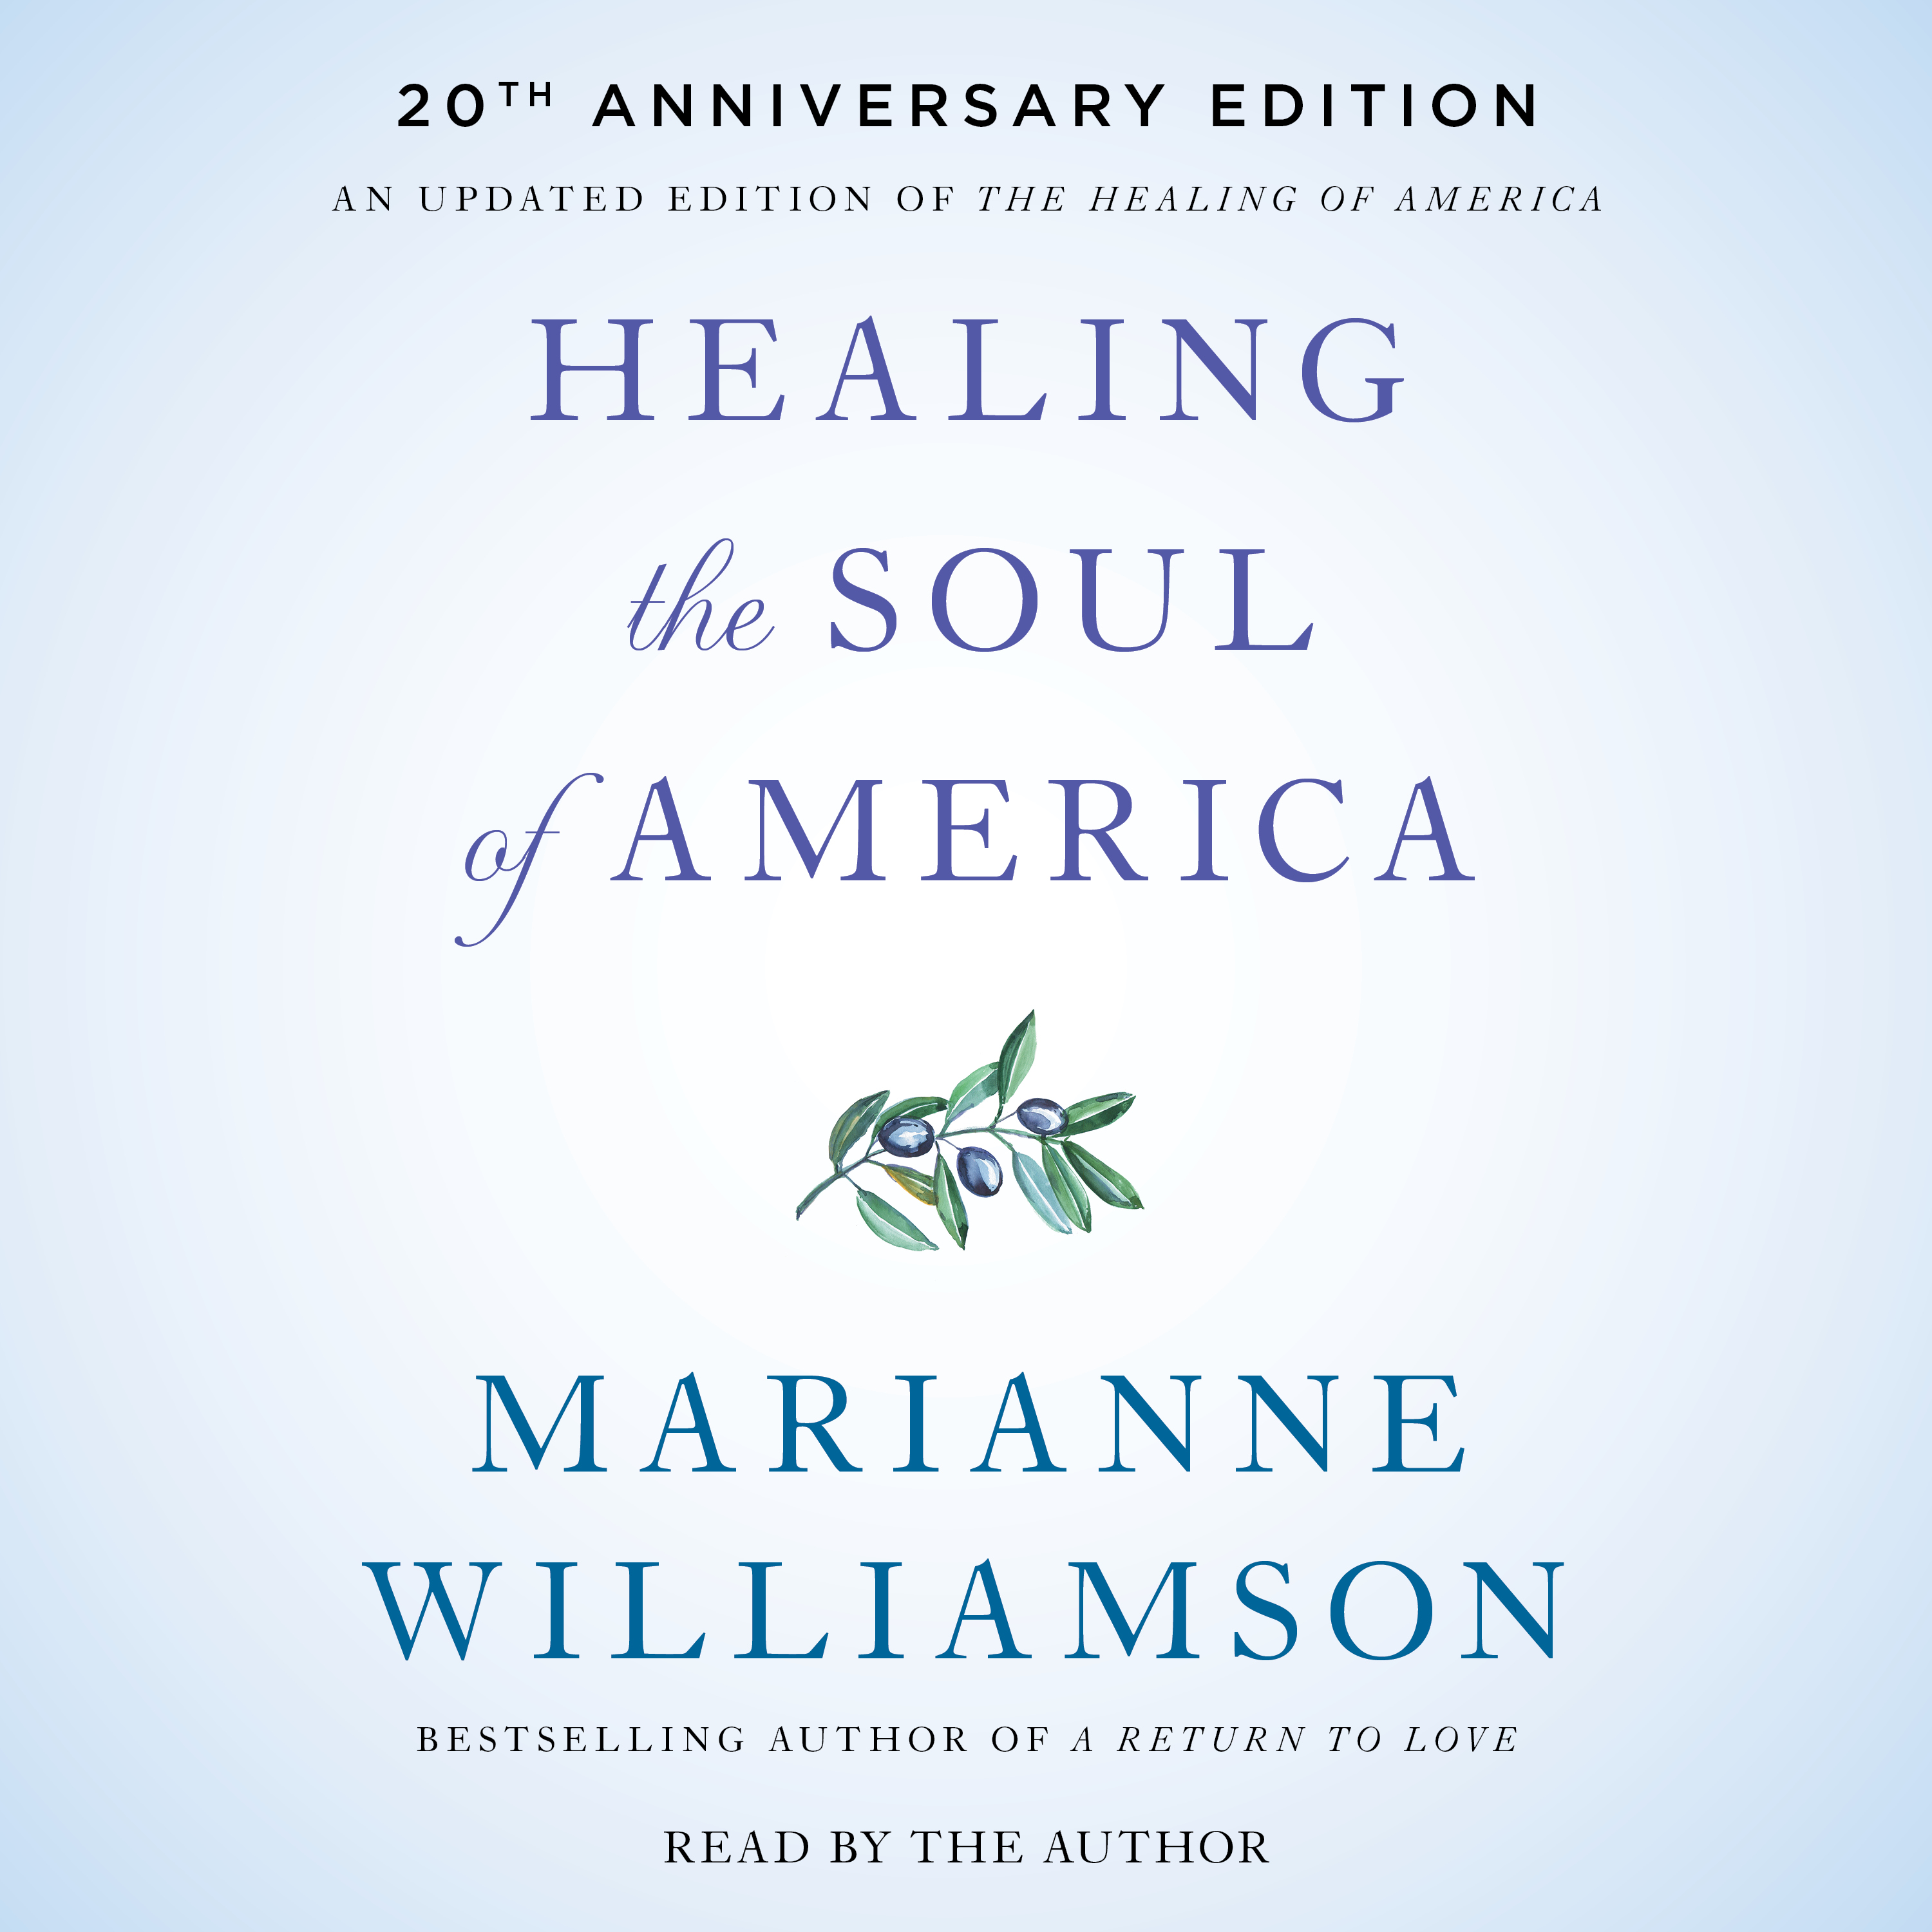 Healing the soul of america 20th anniversary edition 9781508276401 hr